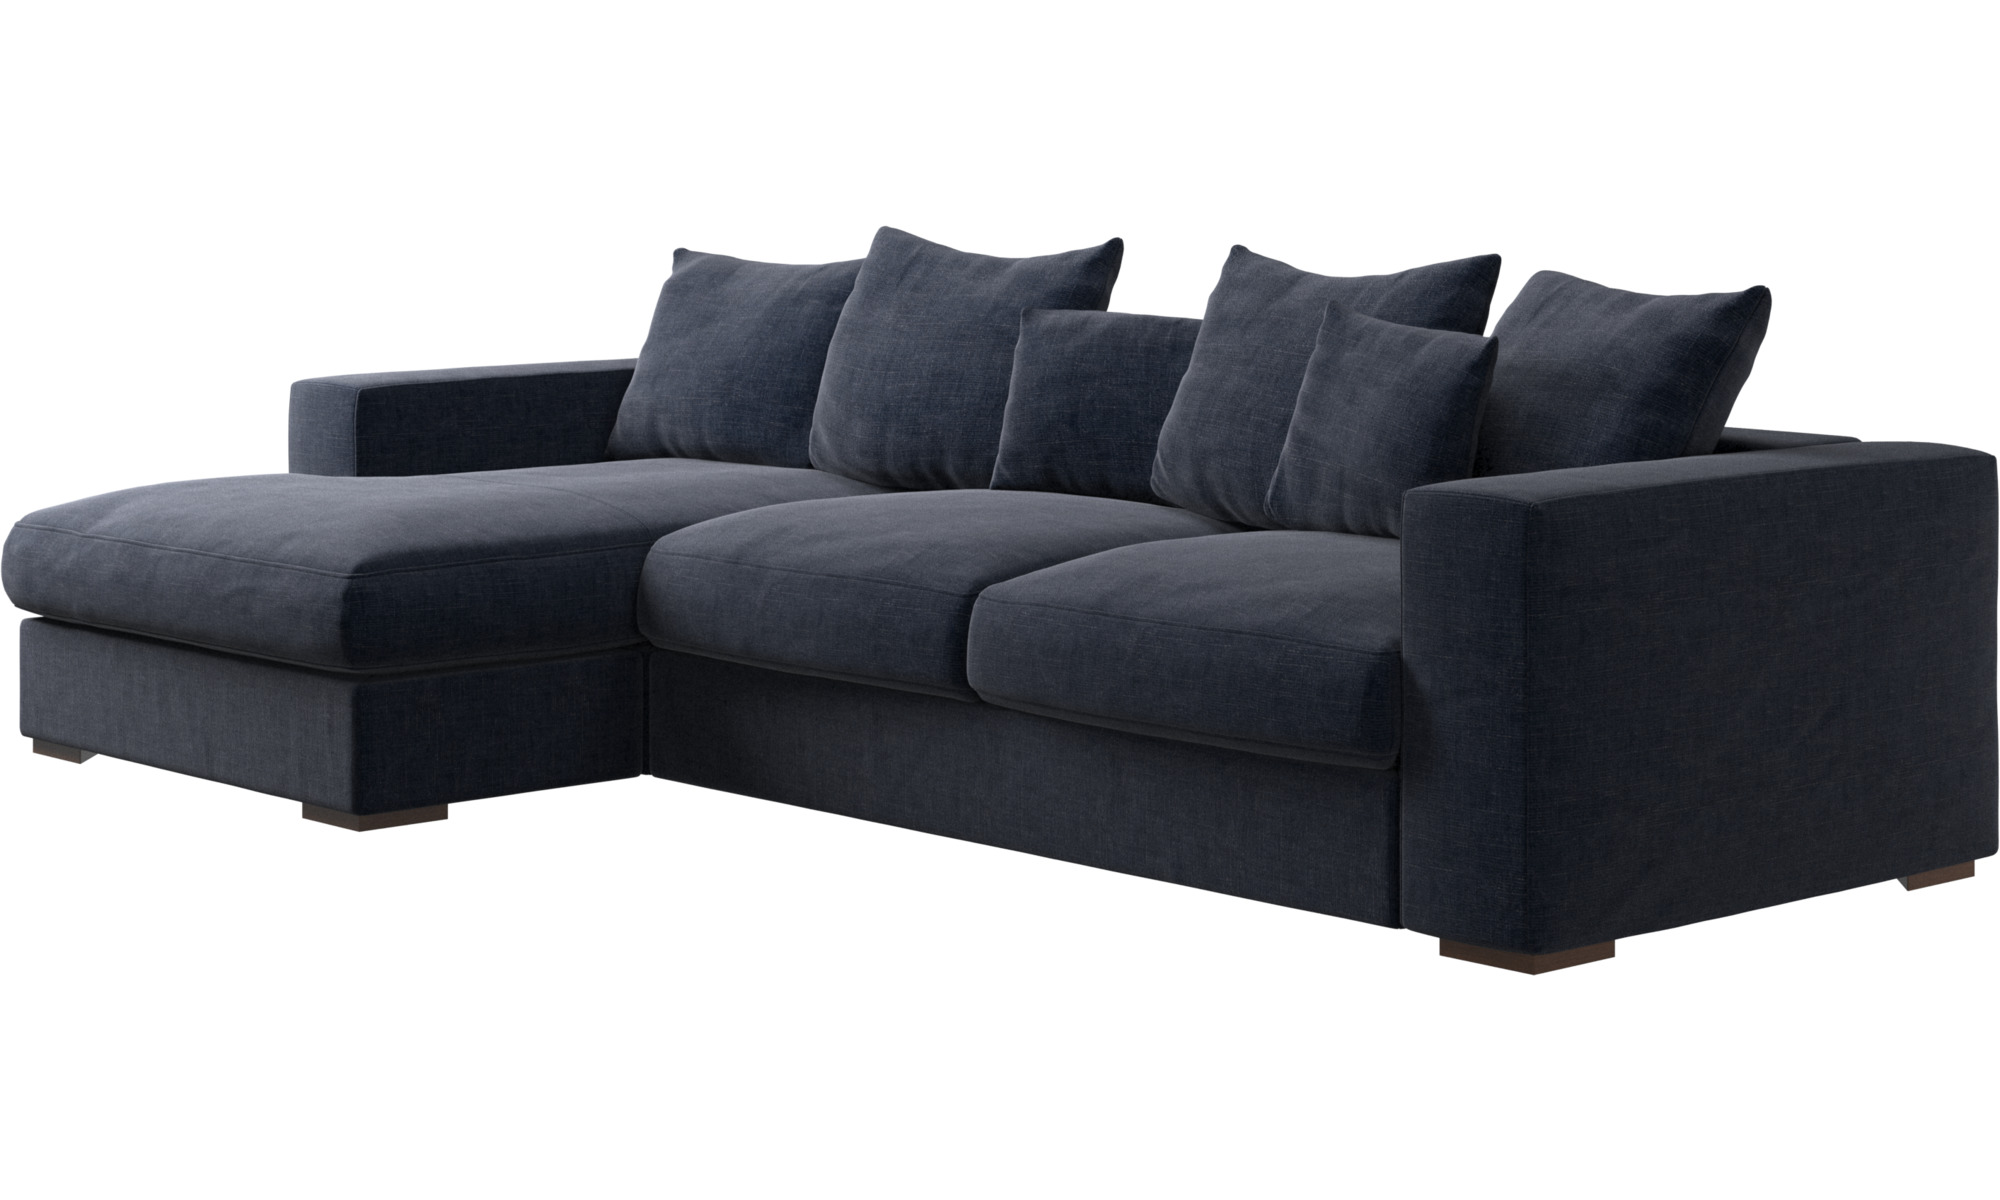 Navy blue napoli cenova sofa with resting unit boconcept for Bo concept